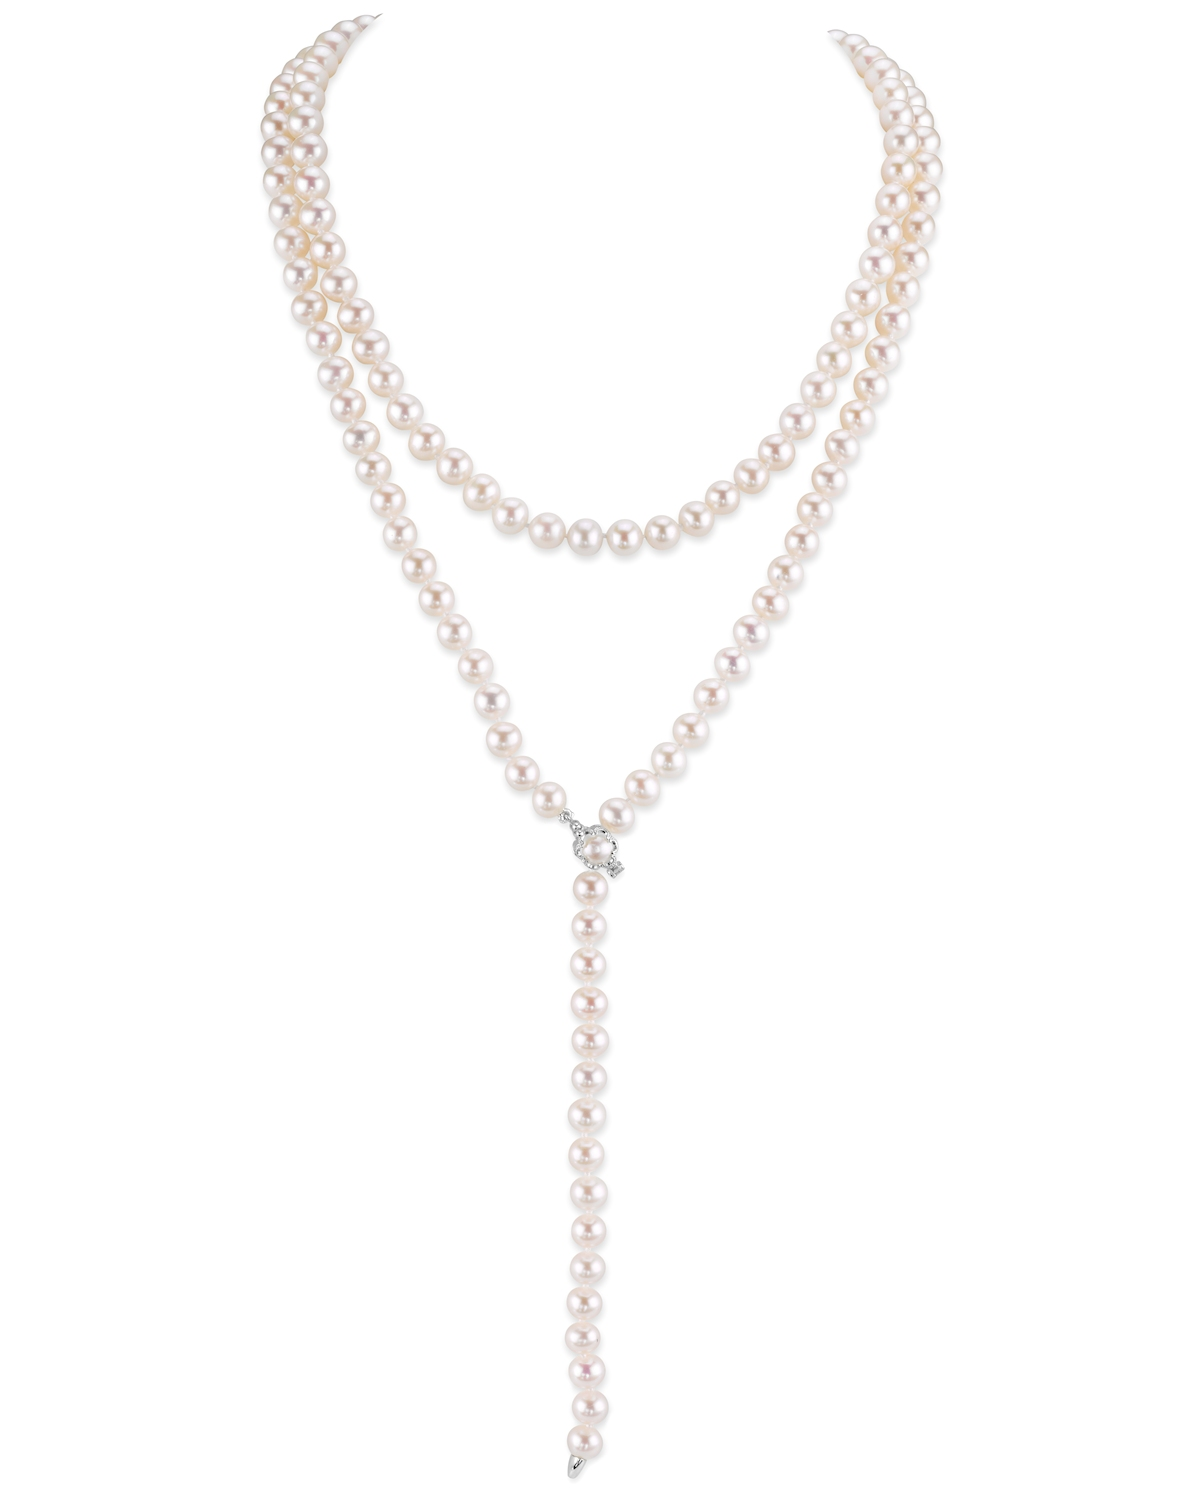 White Freshwater Pearl Adjustable Y-Shape 51 Inch Rope Length Necklace - AAAA Quality